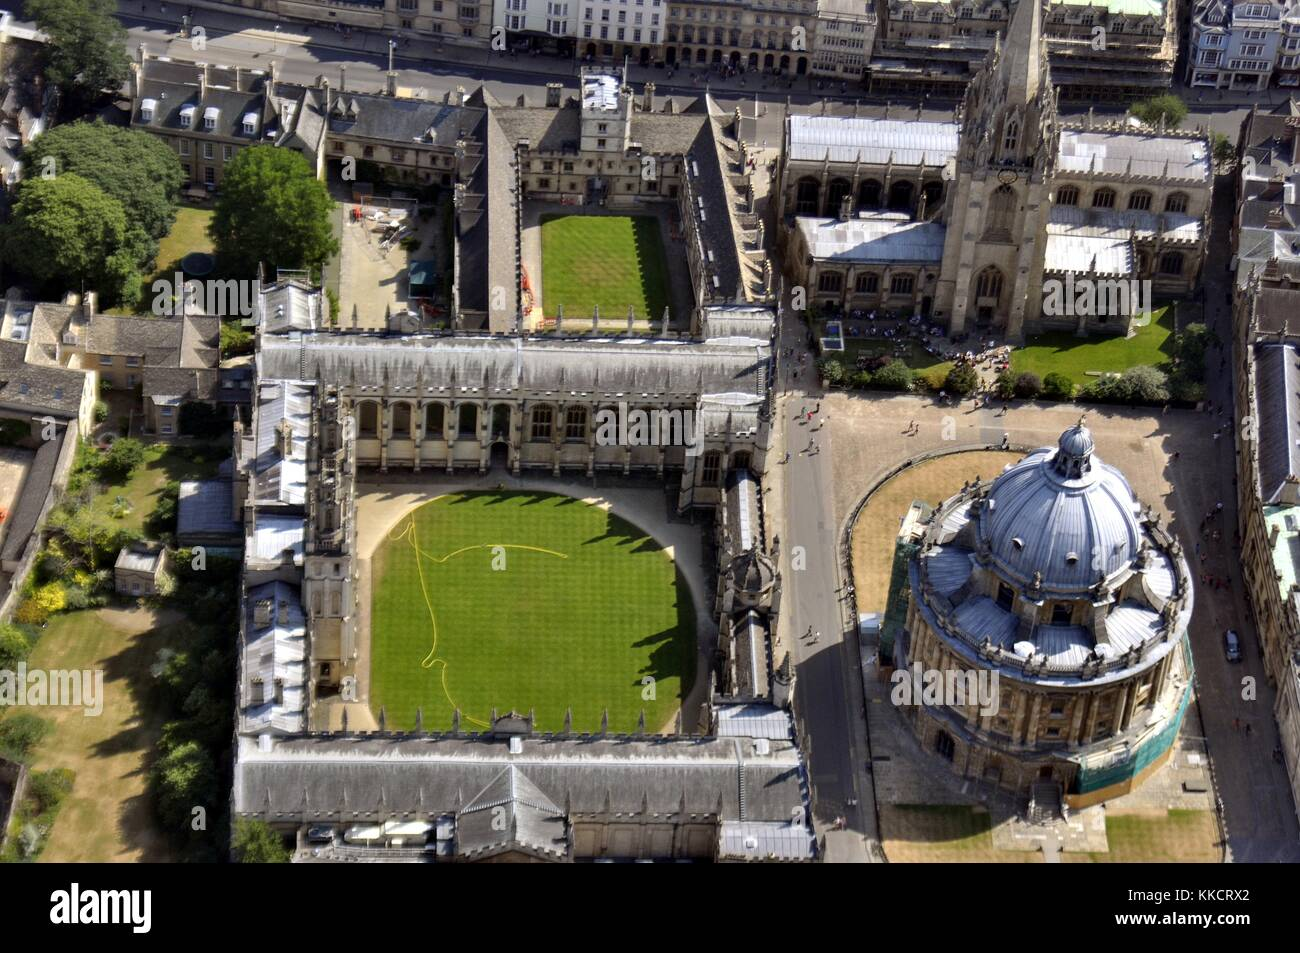 Oxford From The Air - Stock Image